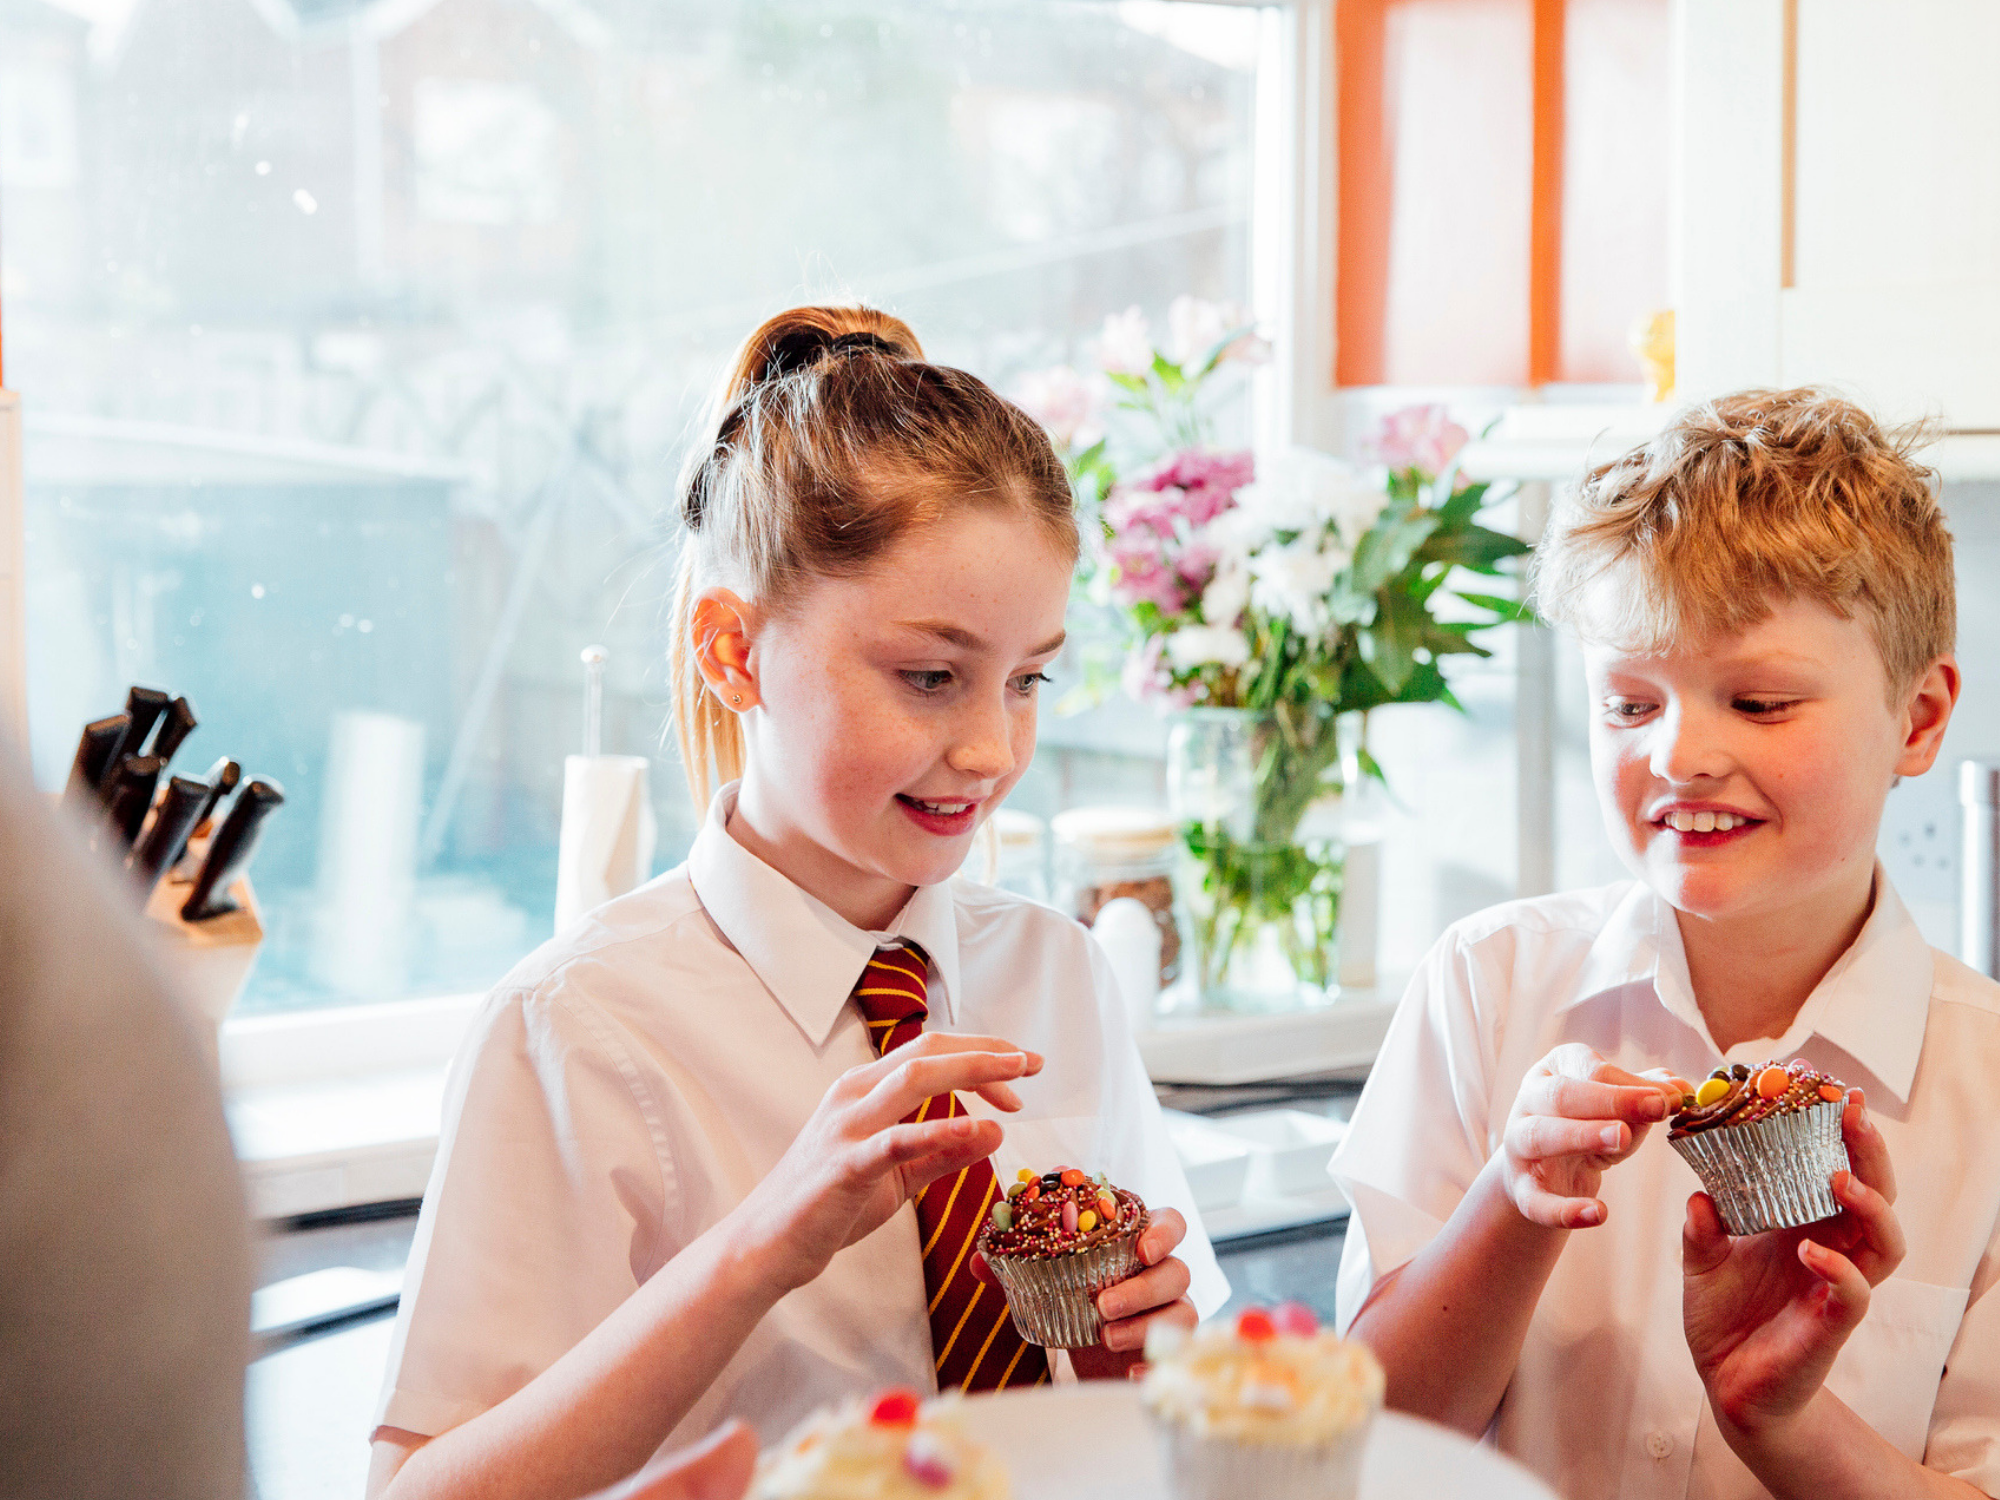 A boy and girl eating cupcakes standing in a kitchen in their school uniforms